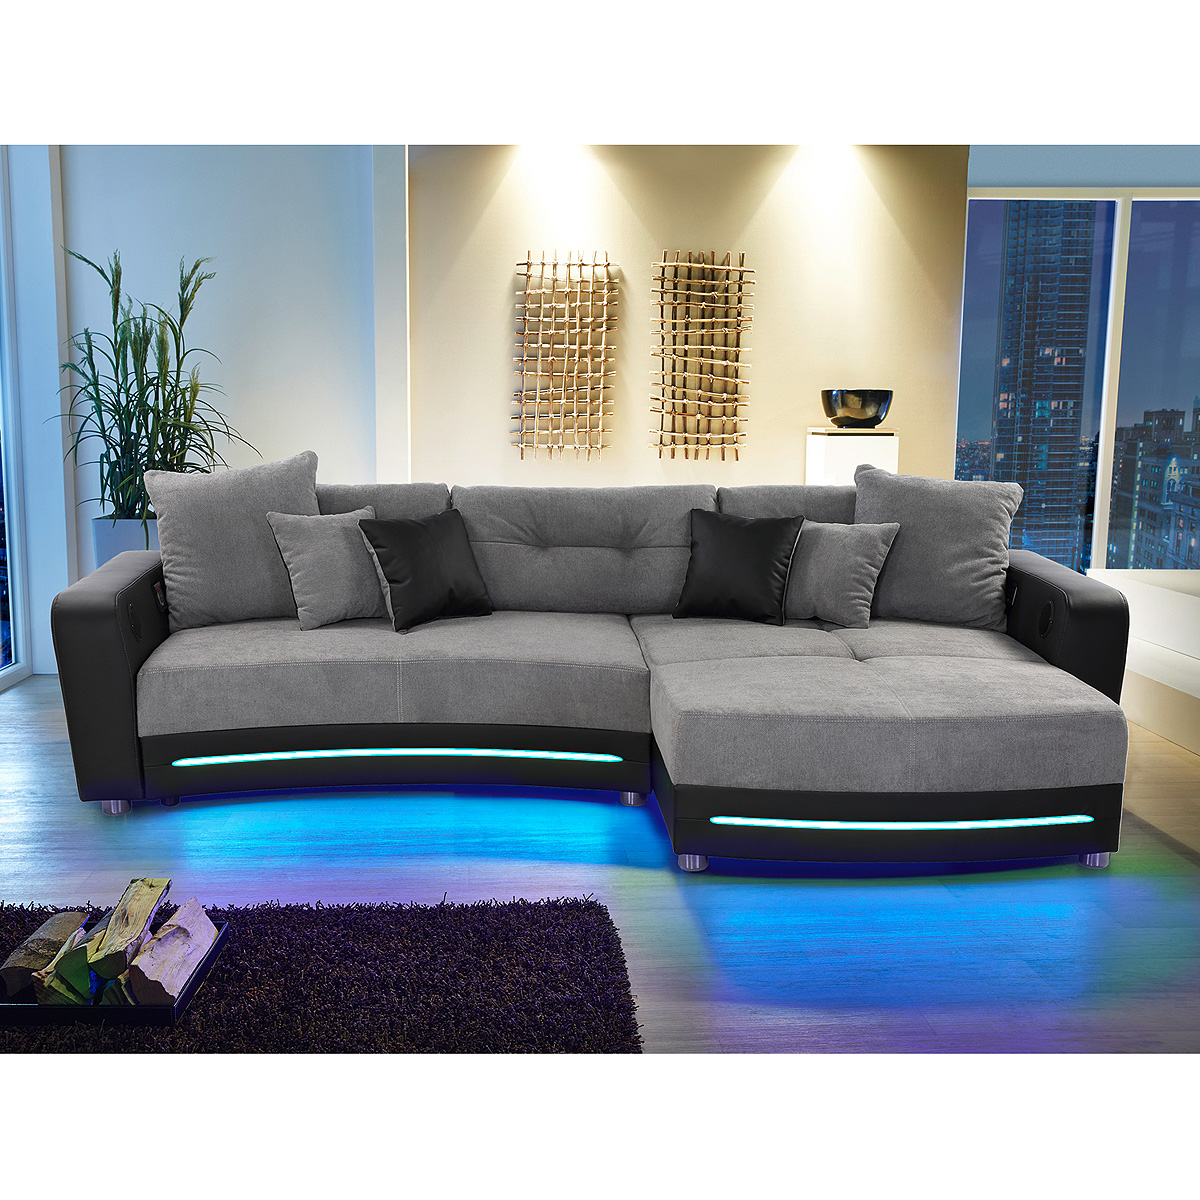 laredo sofa laredo sofa schwarz mit led und soundsystem. Black Bedroom Furniture Sets. Home Design Ideas